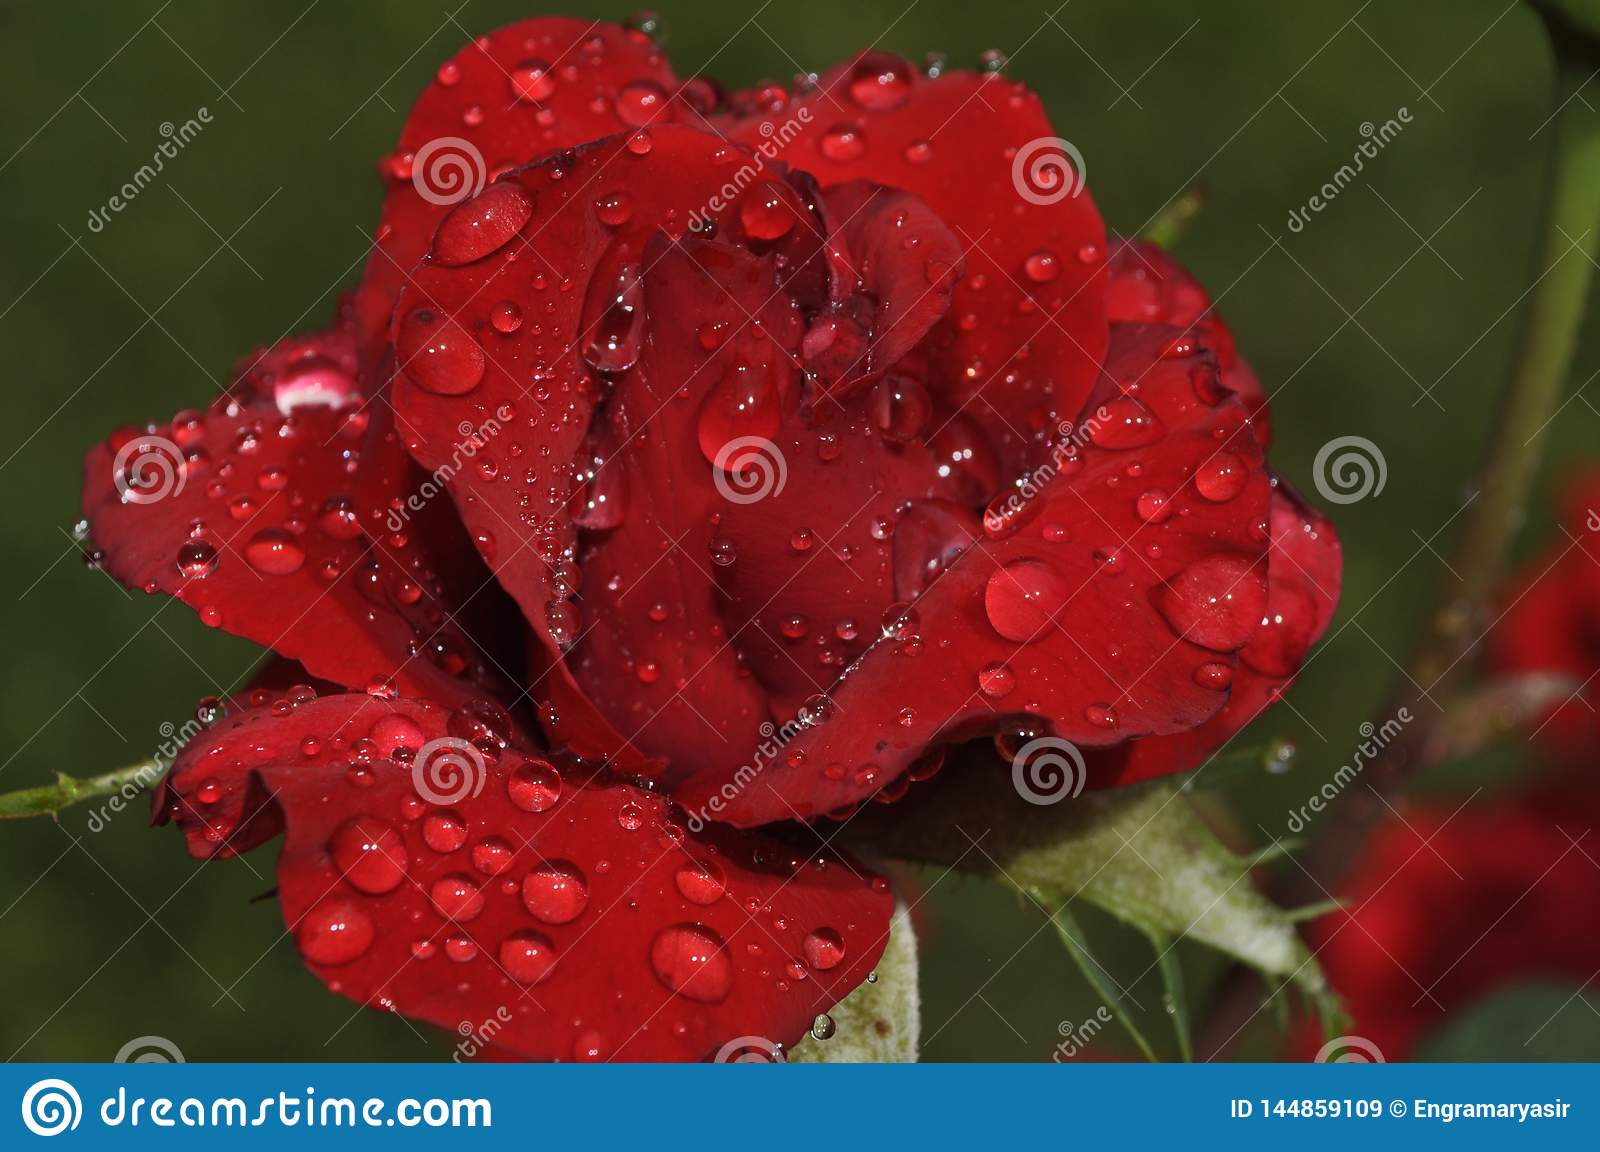 Appealing red rose in fresh dew drops